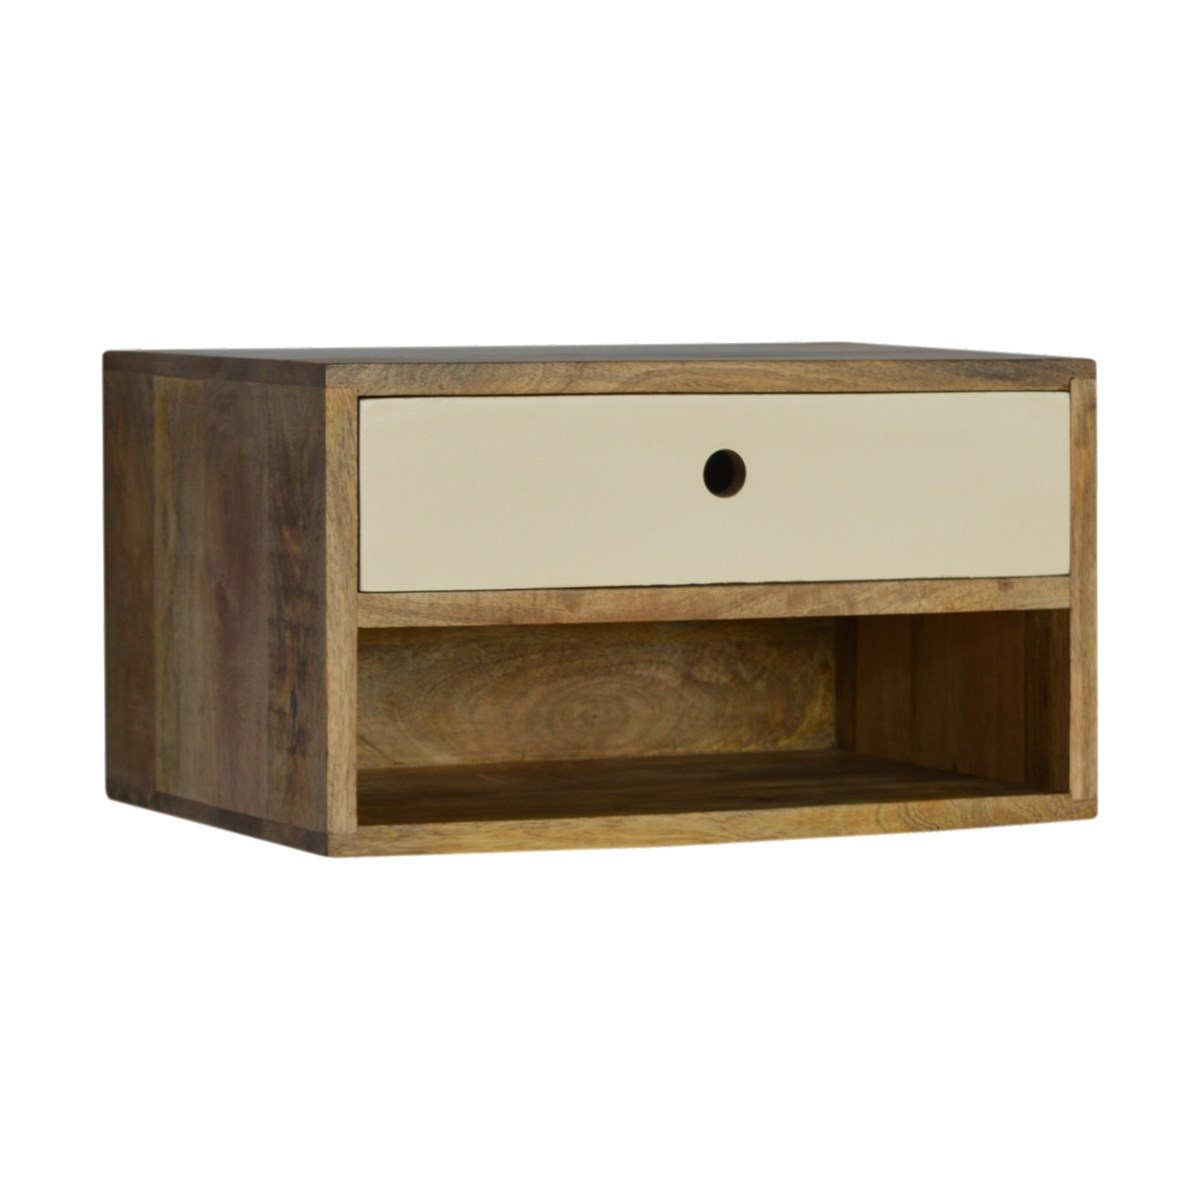 Wall Mounted Bedside Table with Shelf